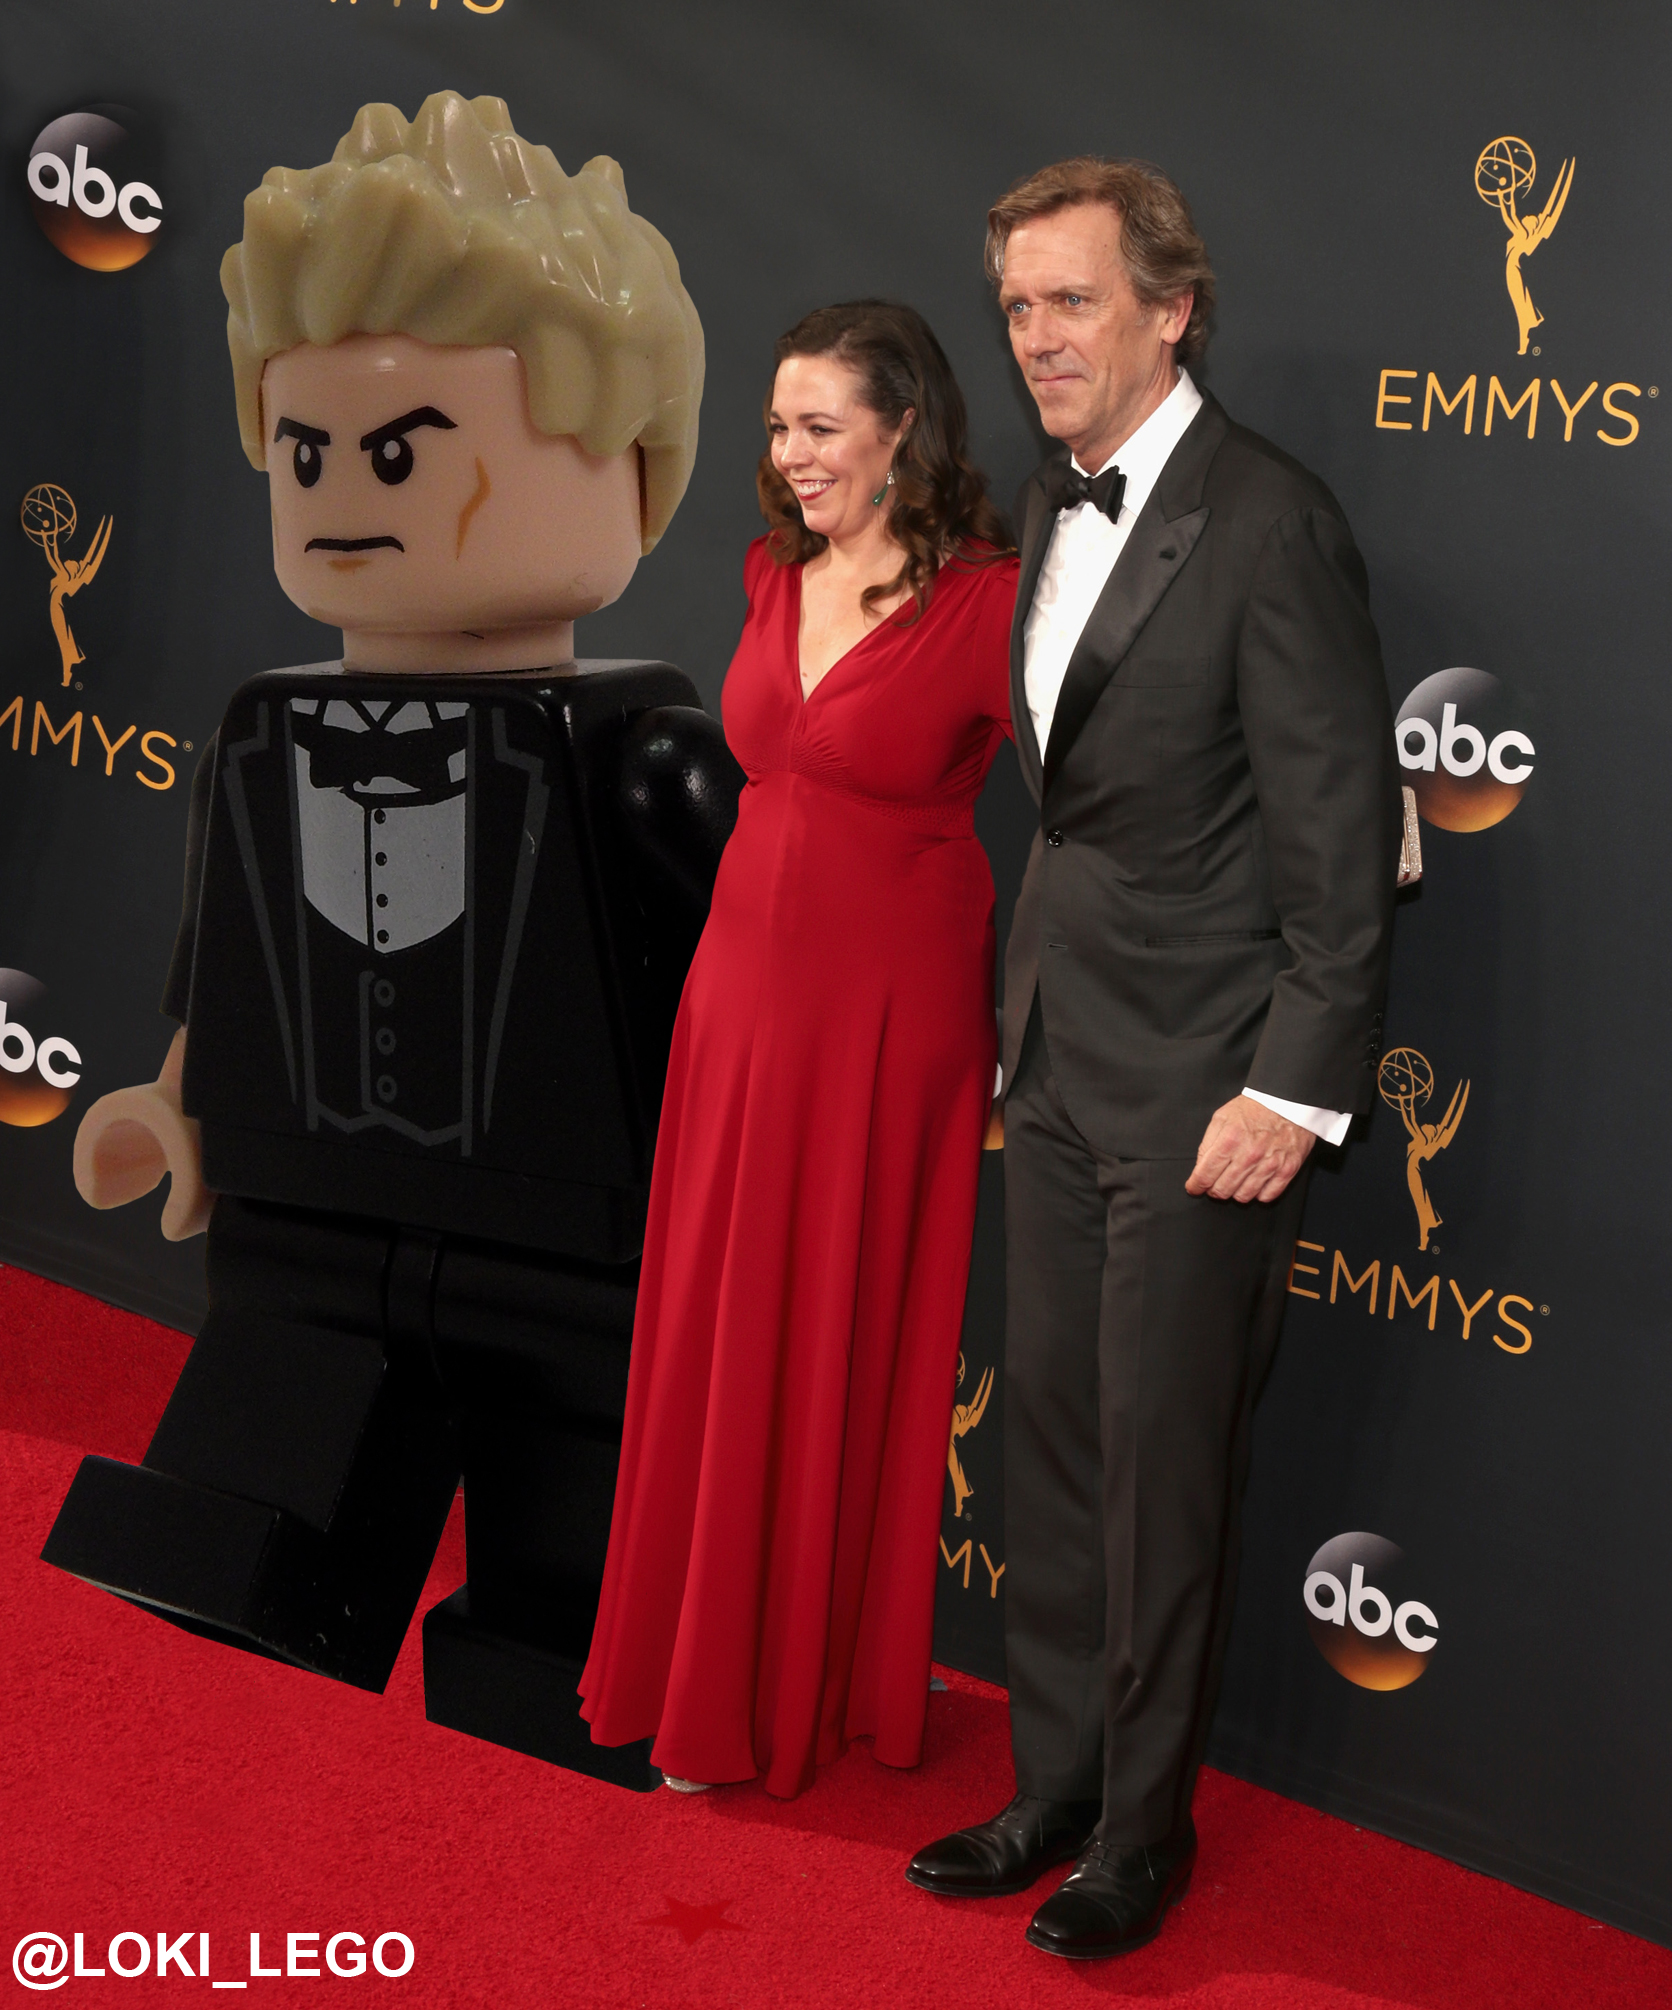 emmys-rc-5